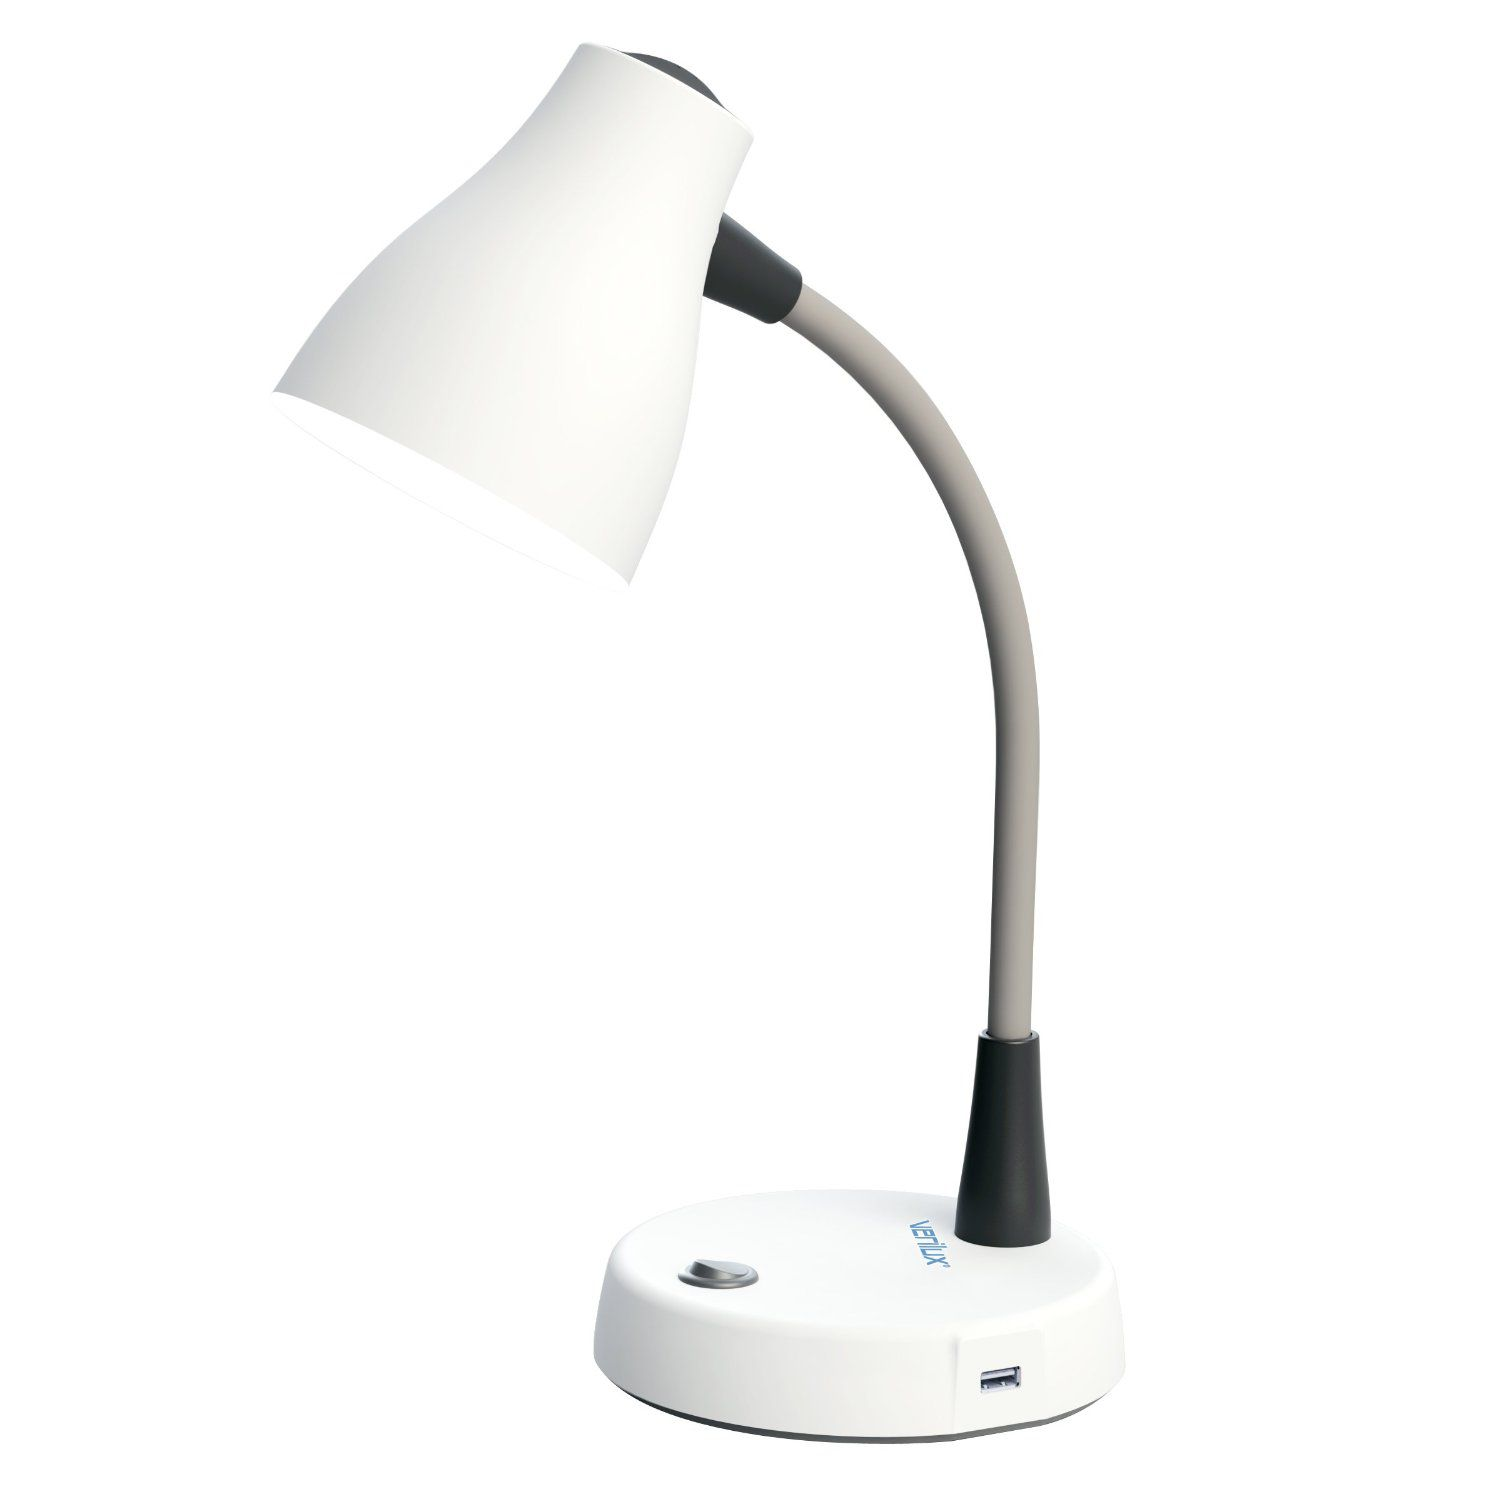 Desk Lamp With Outlet In Base And Usb Port